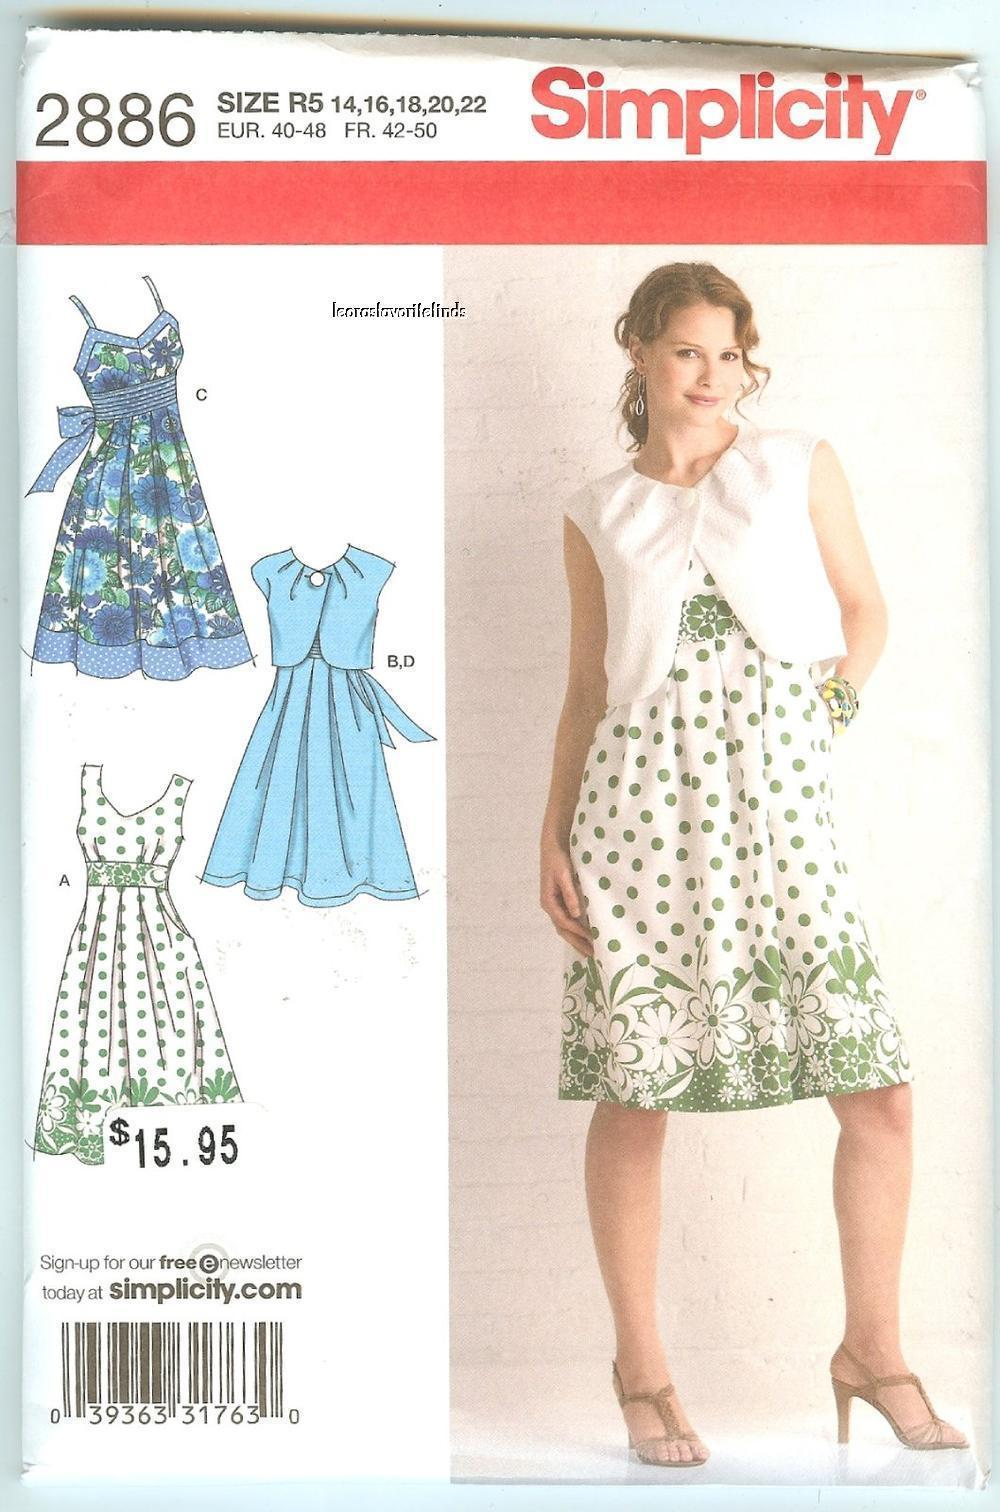 Simplicity 2886 Sewing Pattern: 1 listing